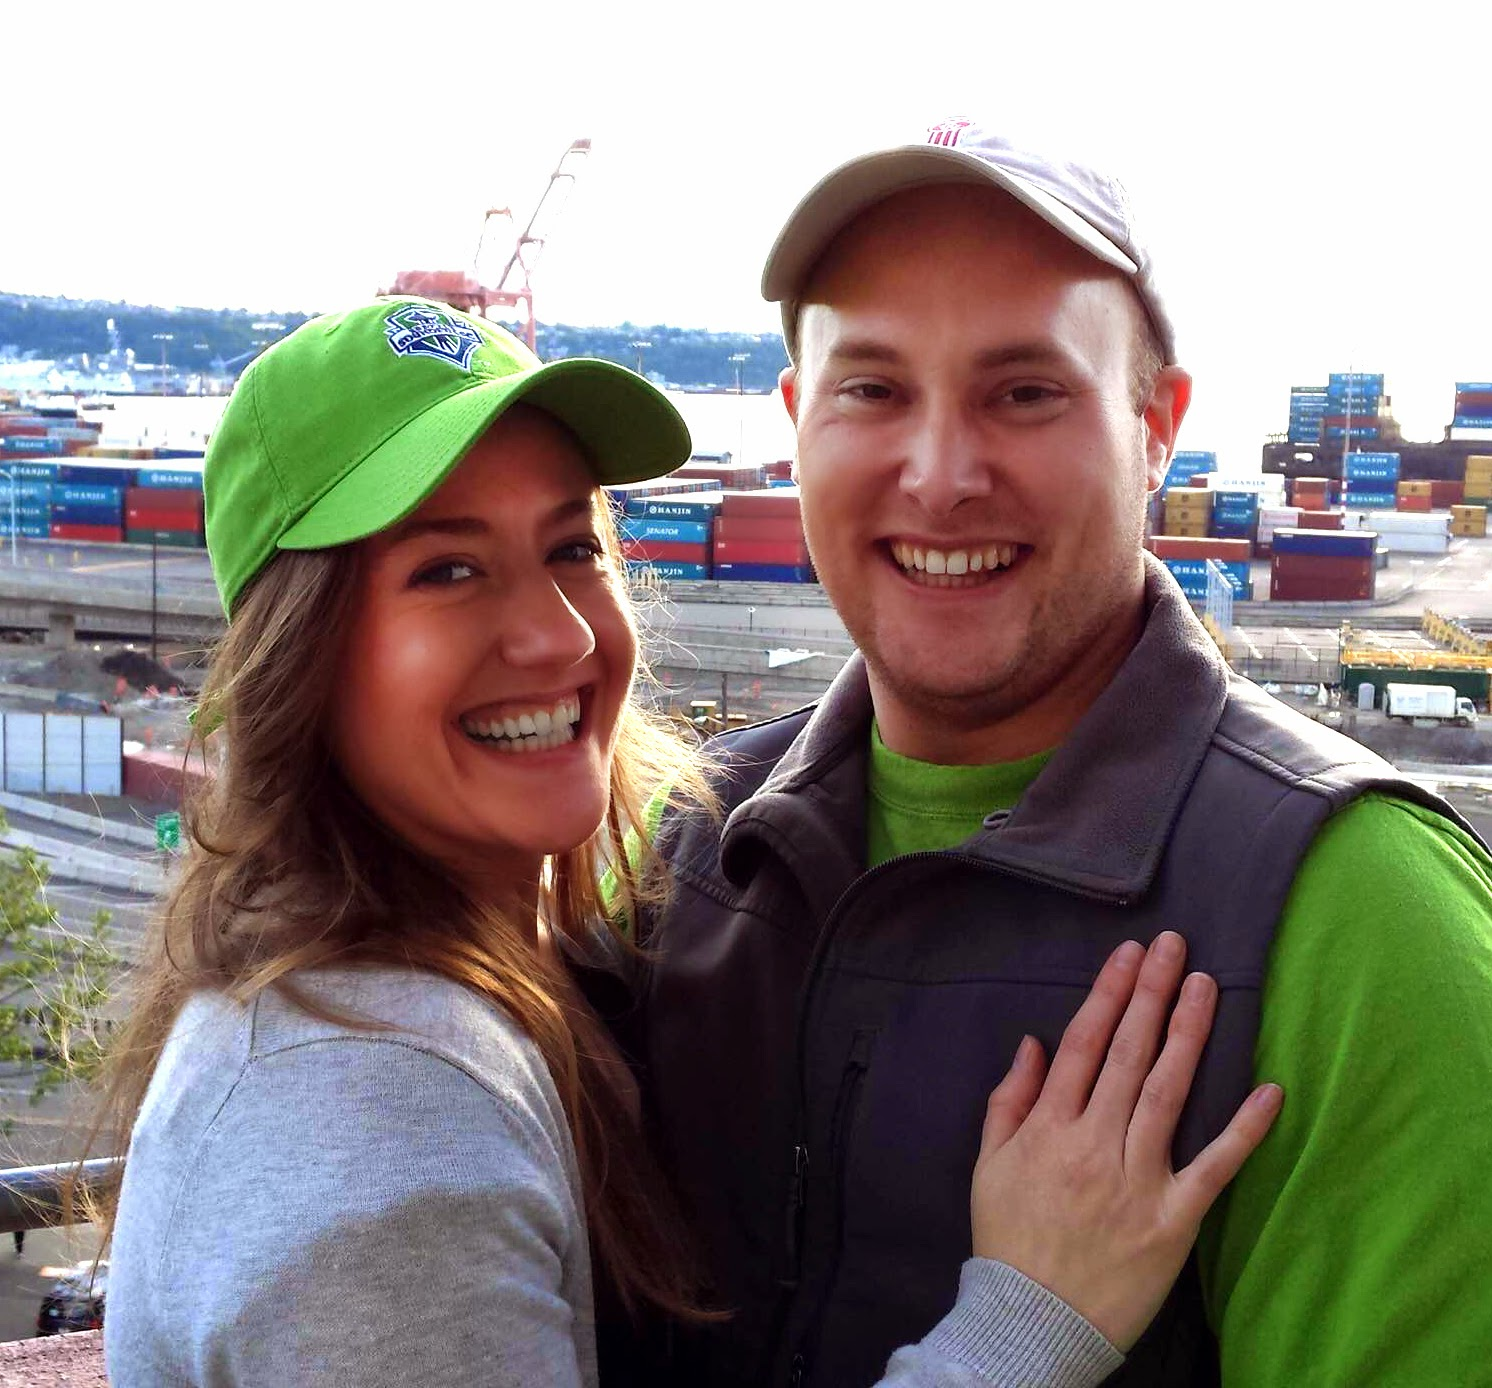 Seahawks' wins and being engaged bring smiles to Barbara and Elliott - Patricia Stimac and Kent Buttars, Seattle Wedding Officiants